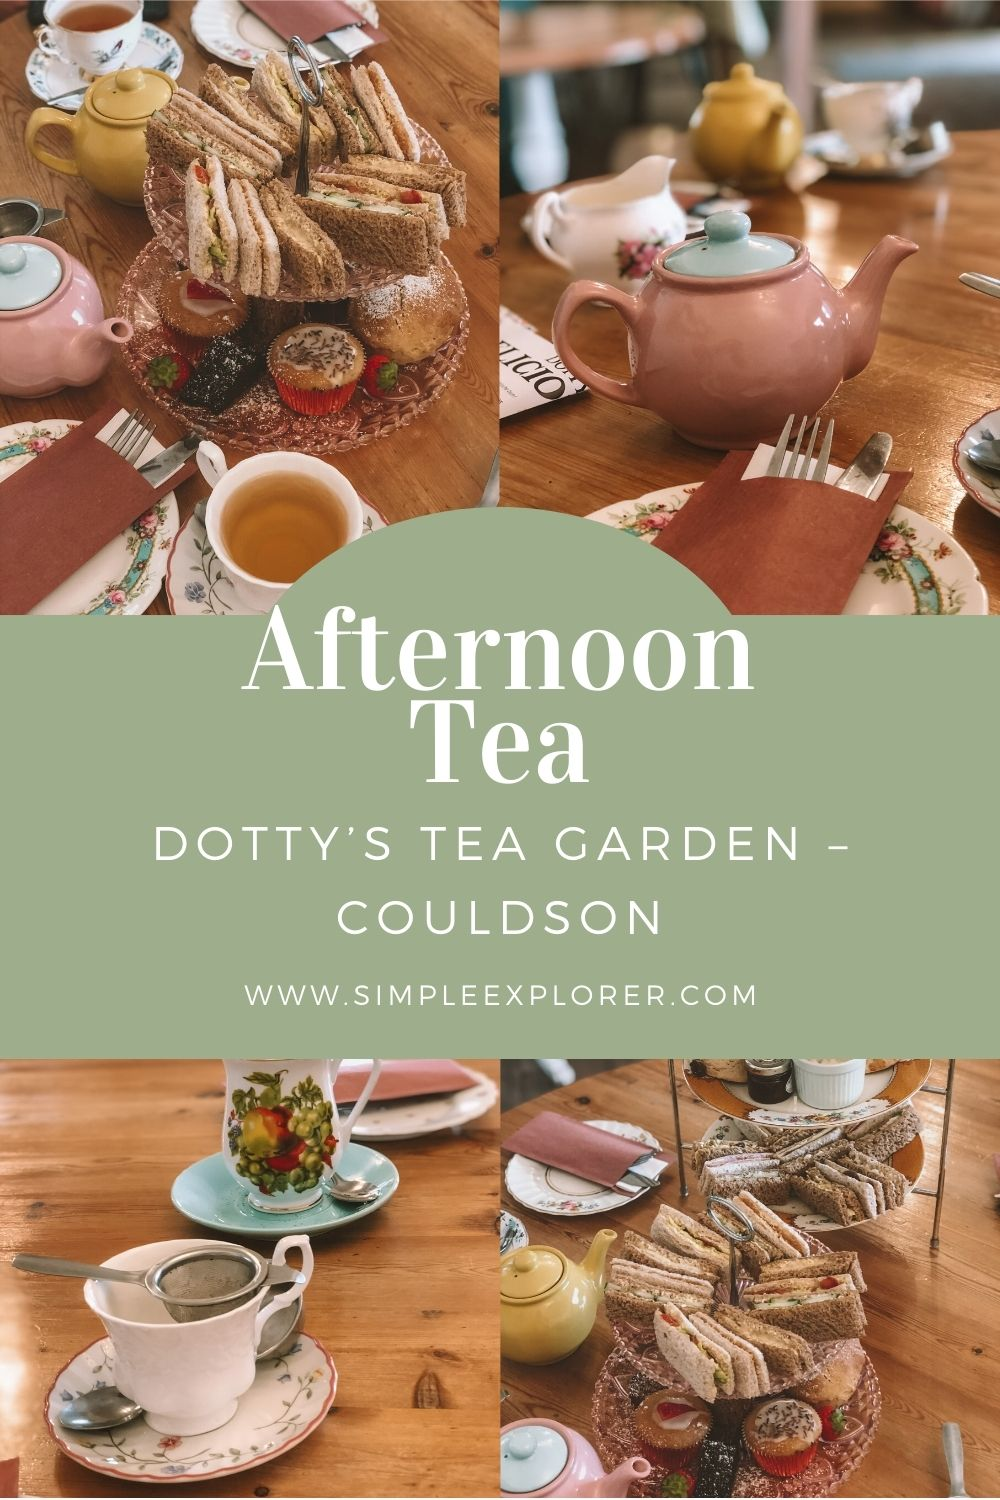 AFTERNOON TEA, DOTTY'S TEA GARDEN – COULDSON